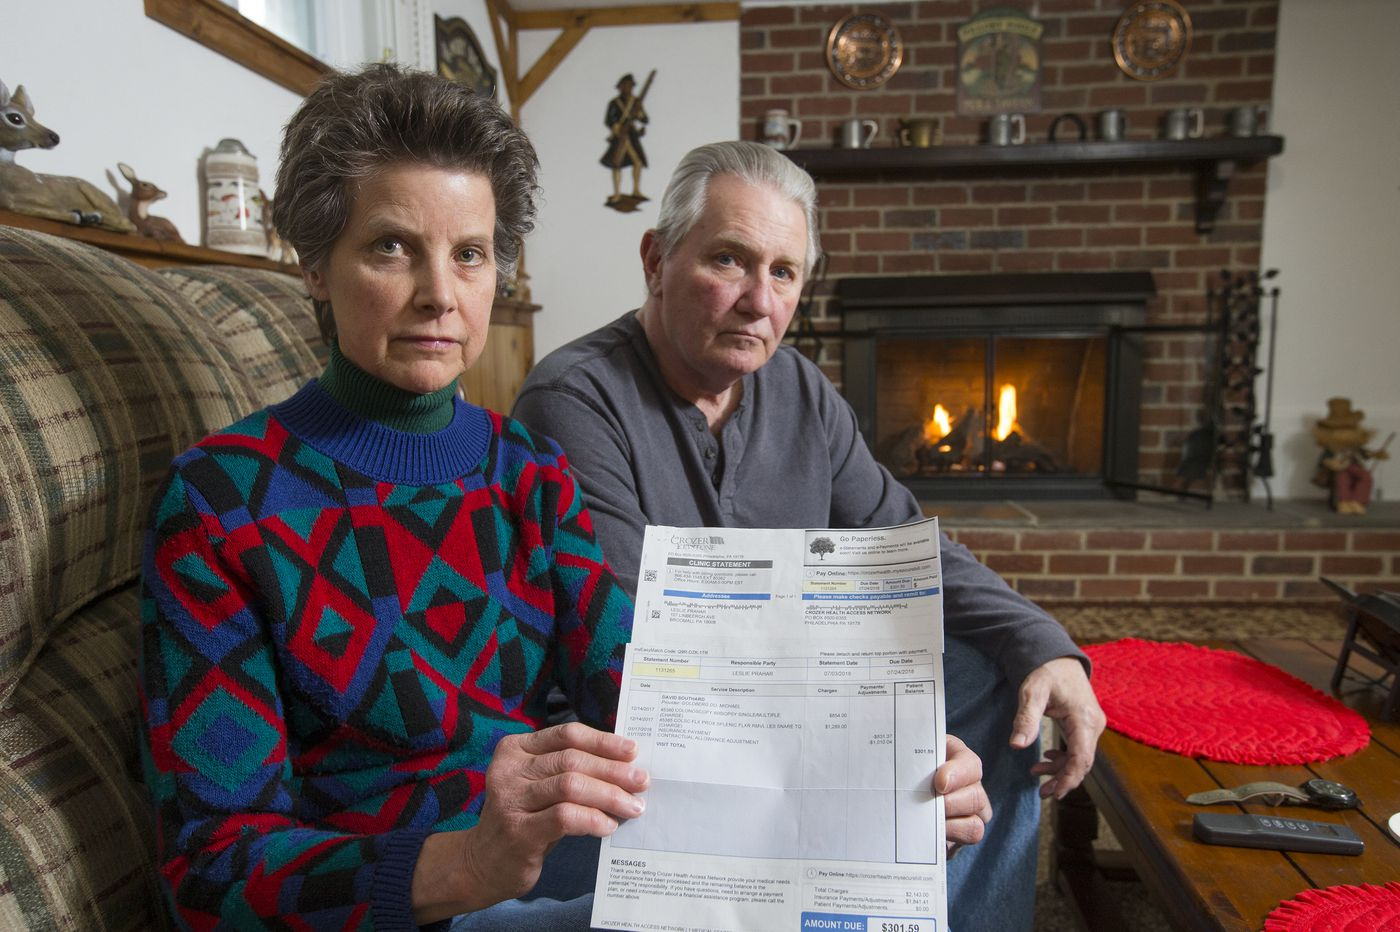 'Paid in protest' - Pa. couple's seven-month attempt to correct a colonoscopy bill